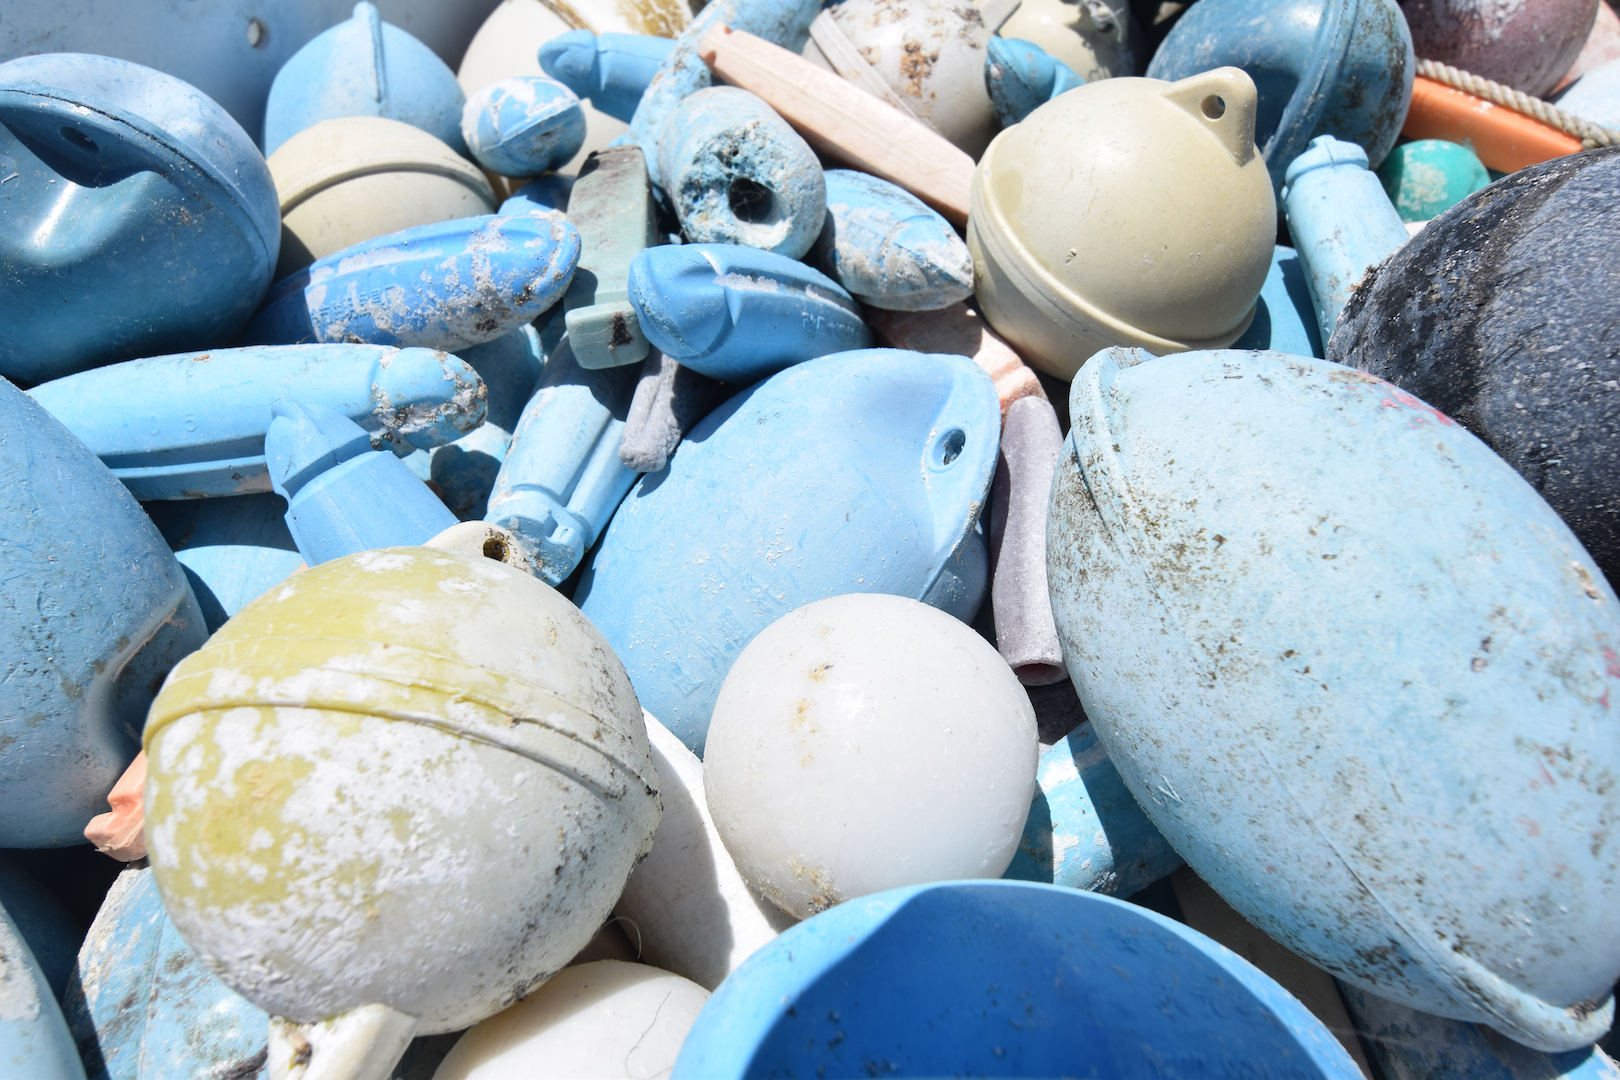 Midway, Atoll, Island, Northwestern, Hawaiian, beach, clean up, marine, debris, plastic,, floats, fishing, removal